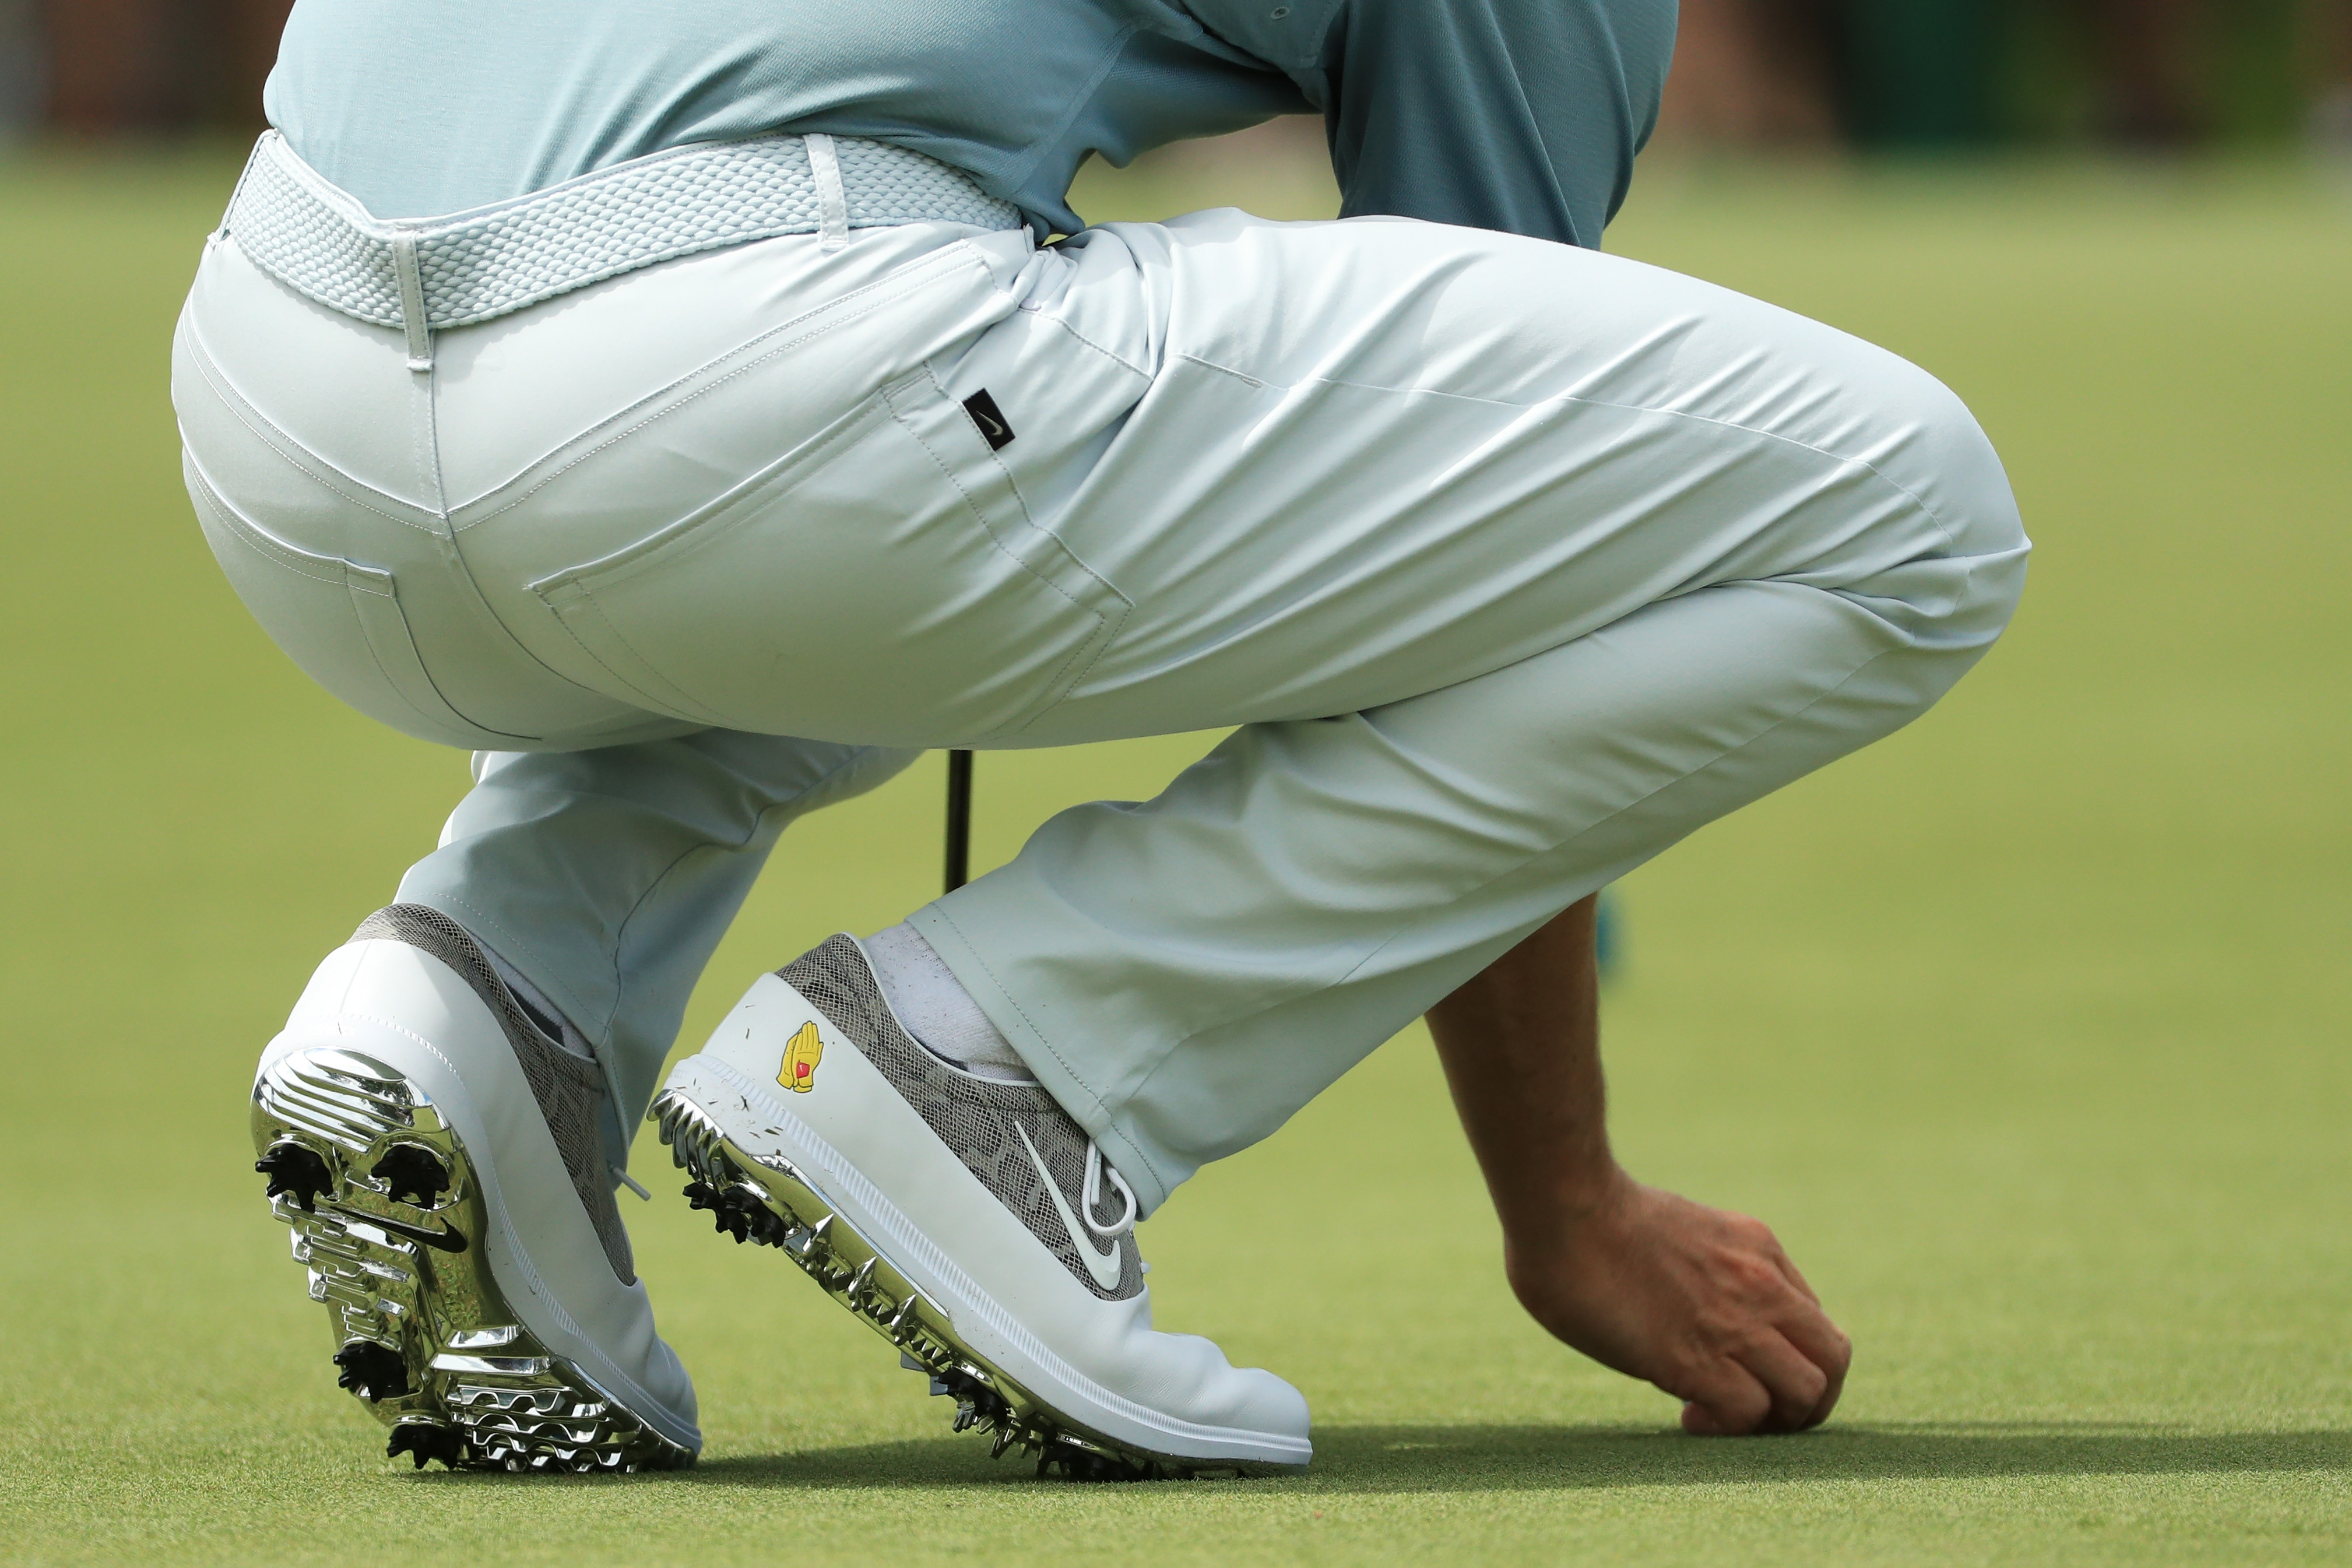 Rory McIlroy's shoes